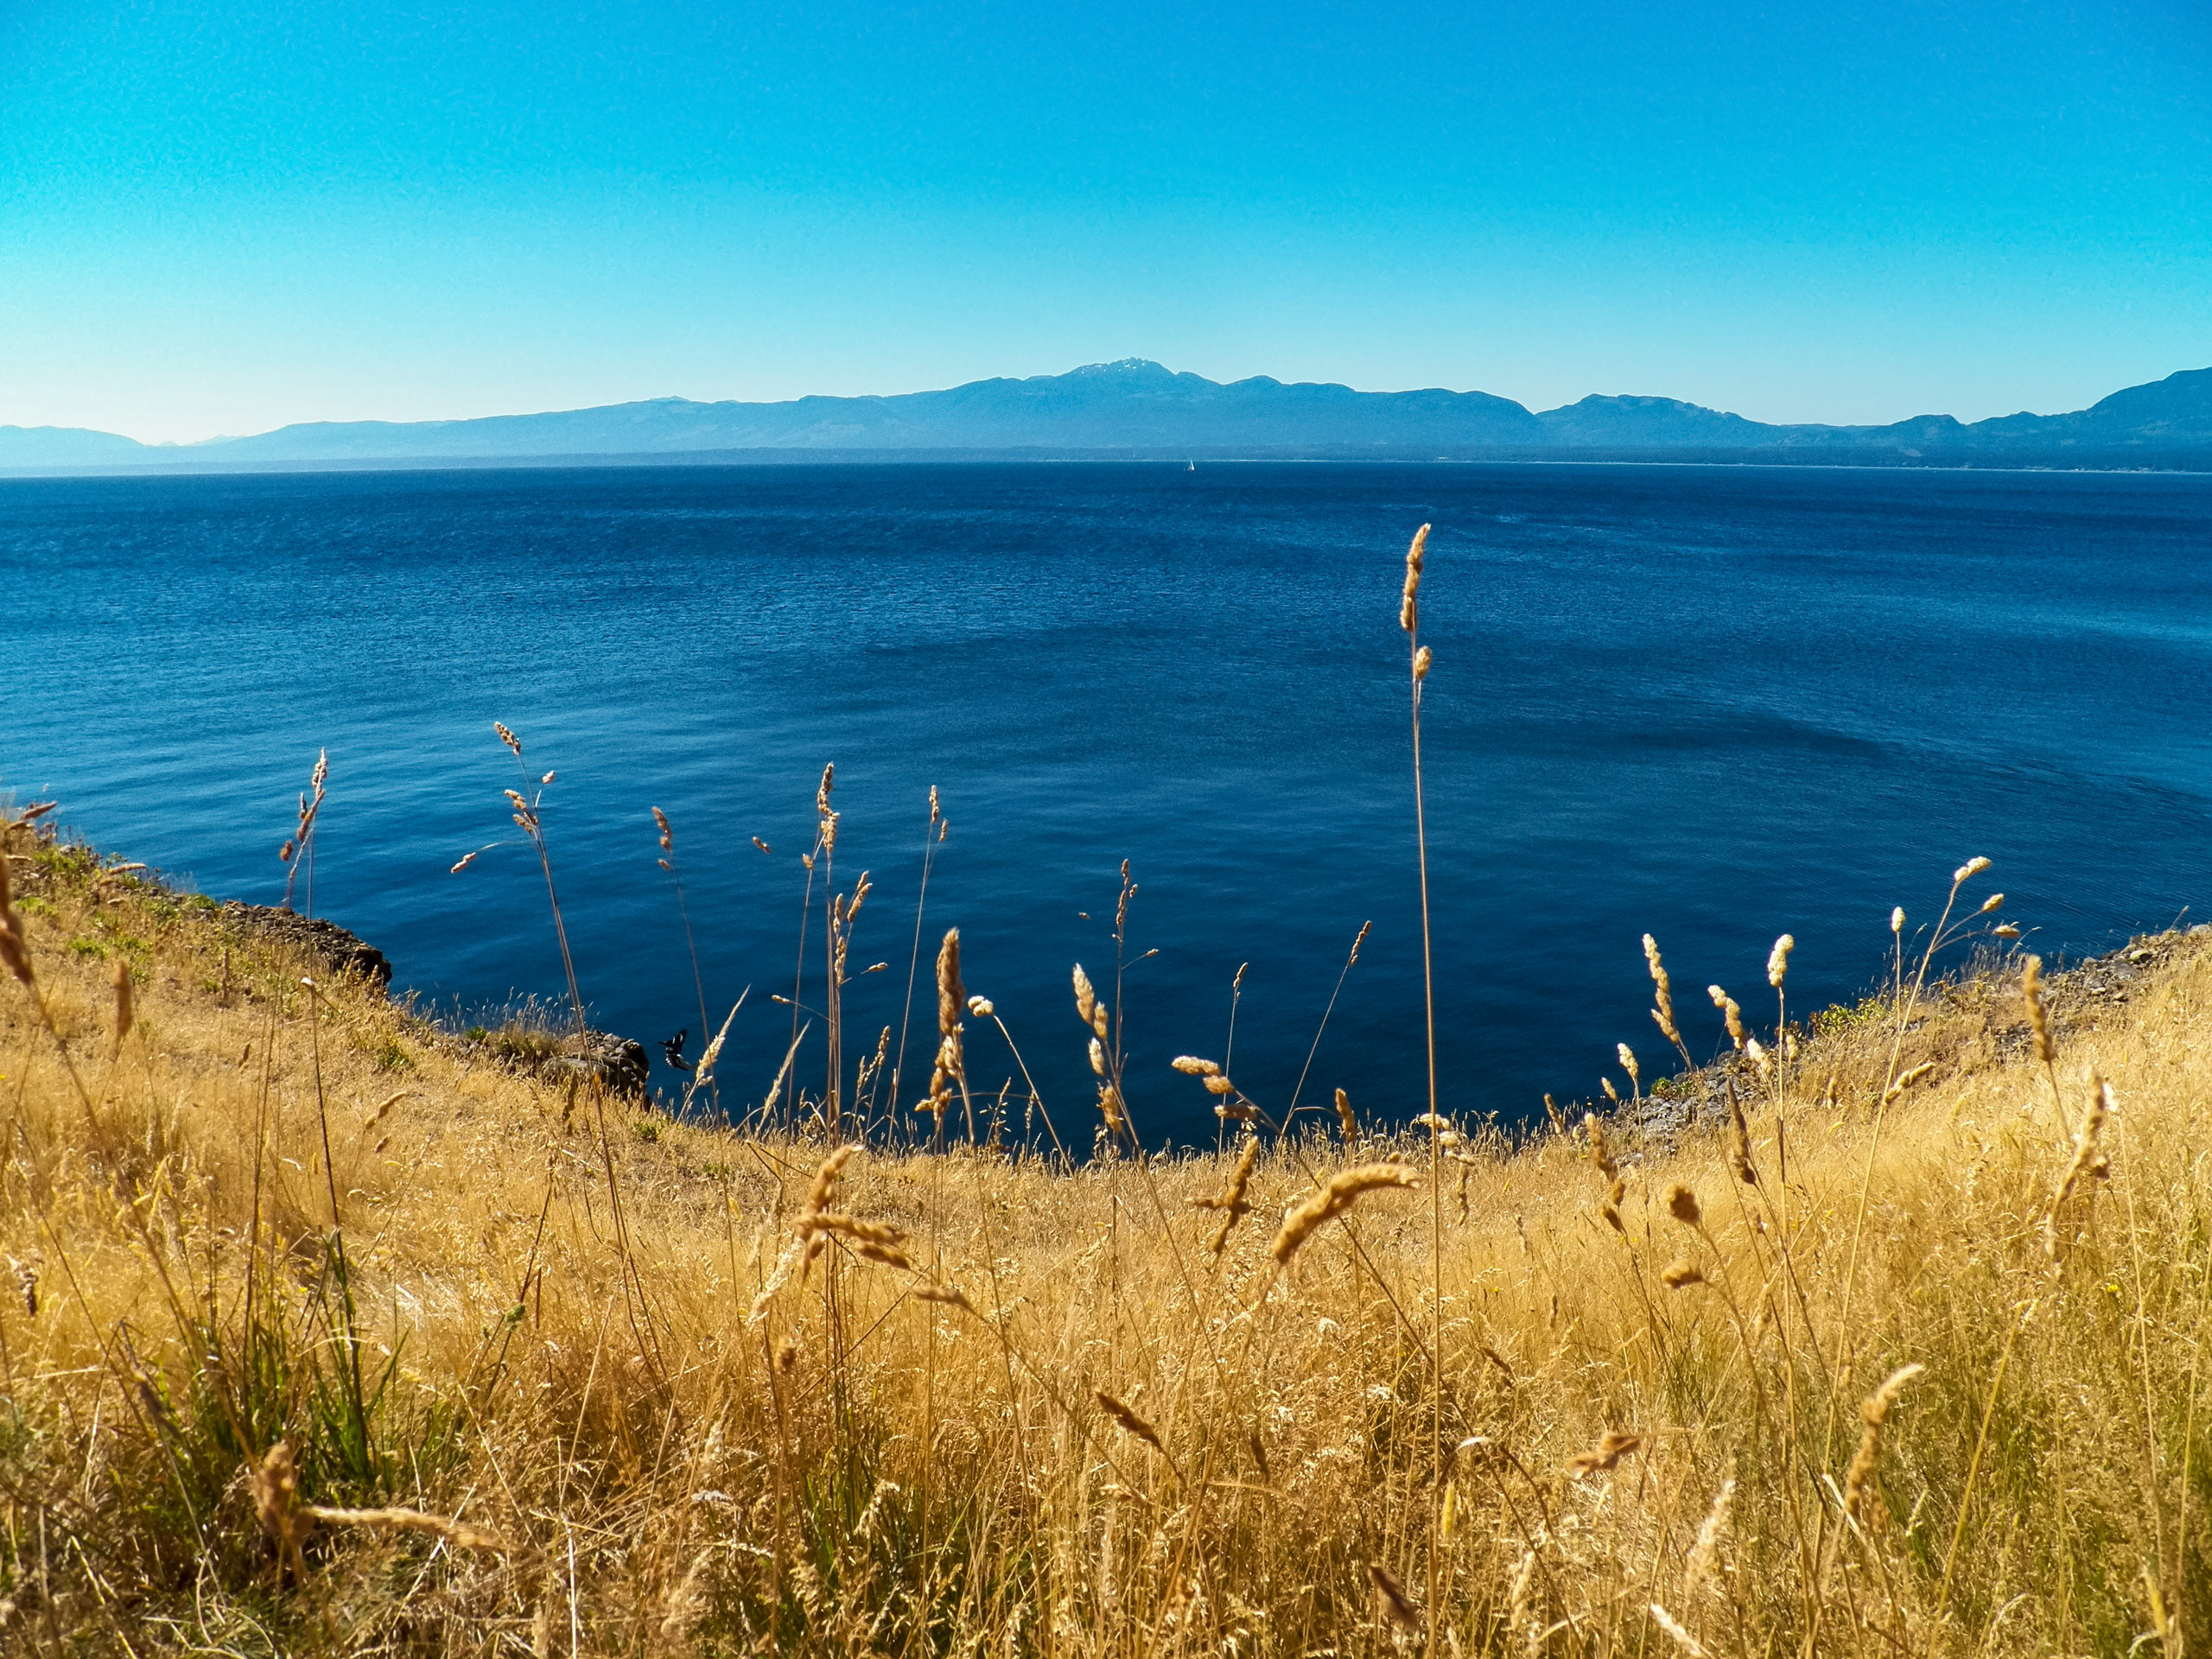 Hornby island Pacific Ocean islands off the west coast Vancouver island BC British Columbia